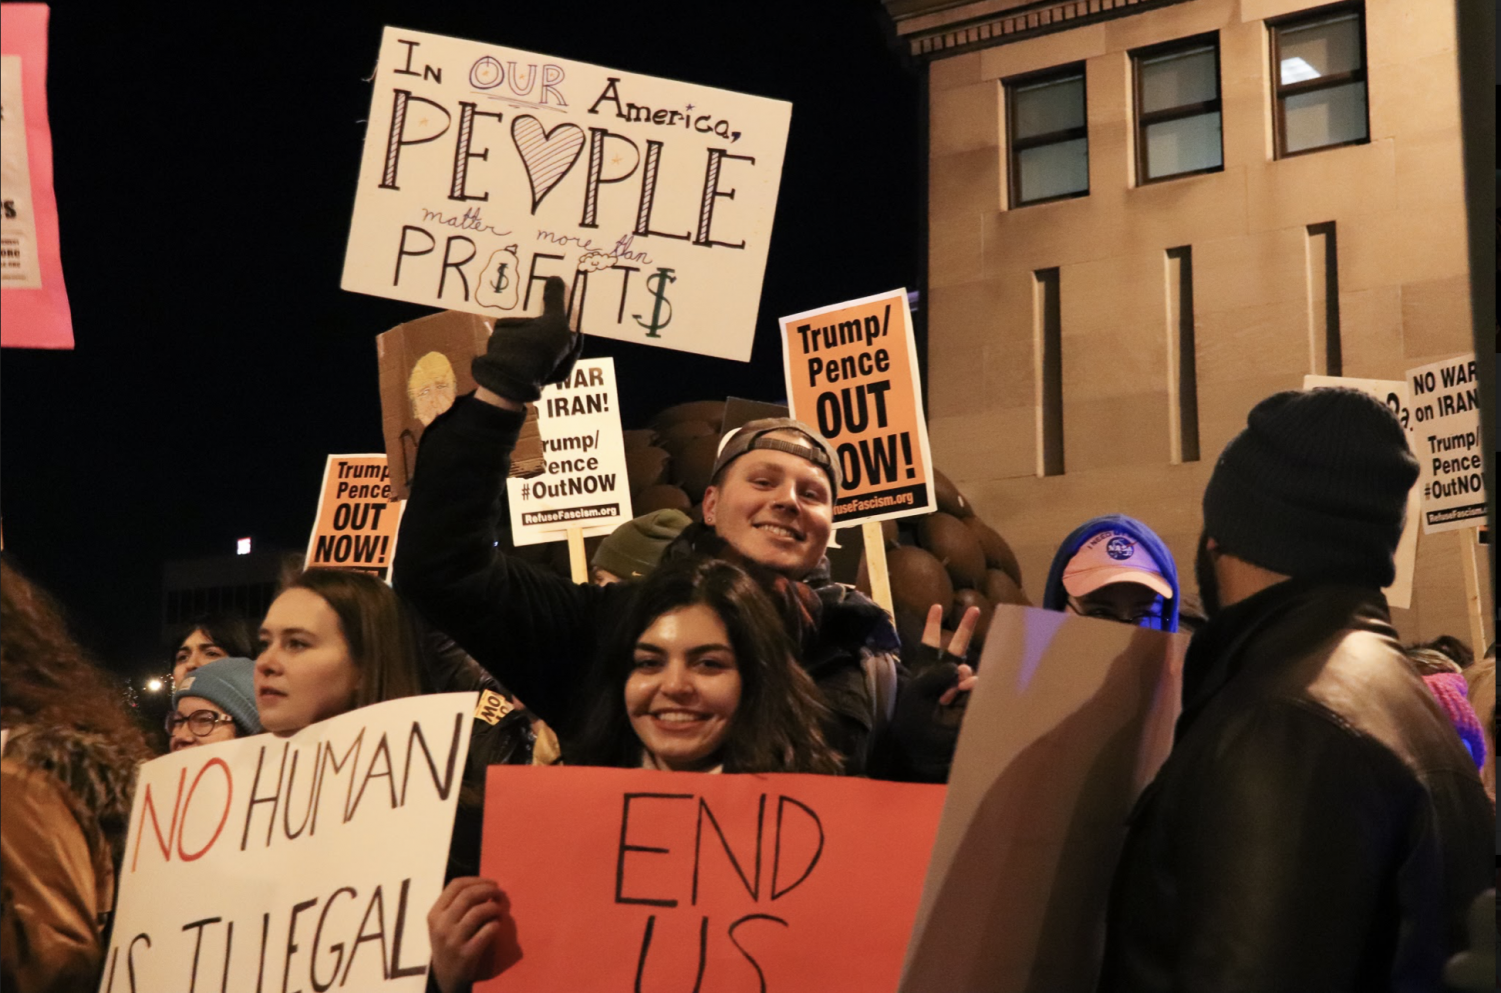 Eric Rorholm, chair of the Marquette College Democrats, attended the protest.